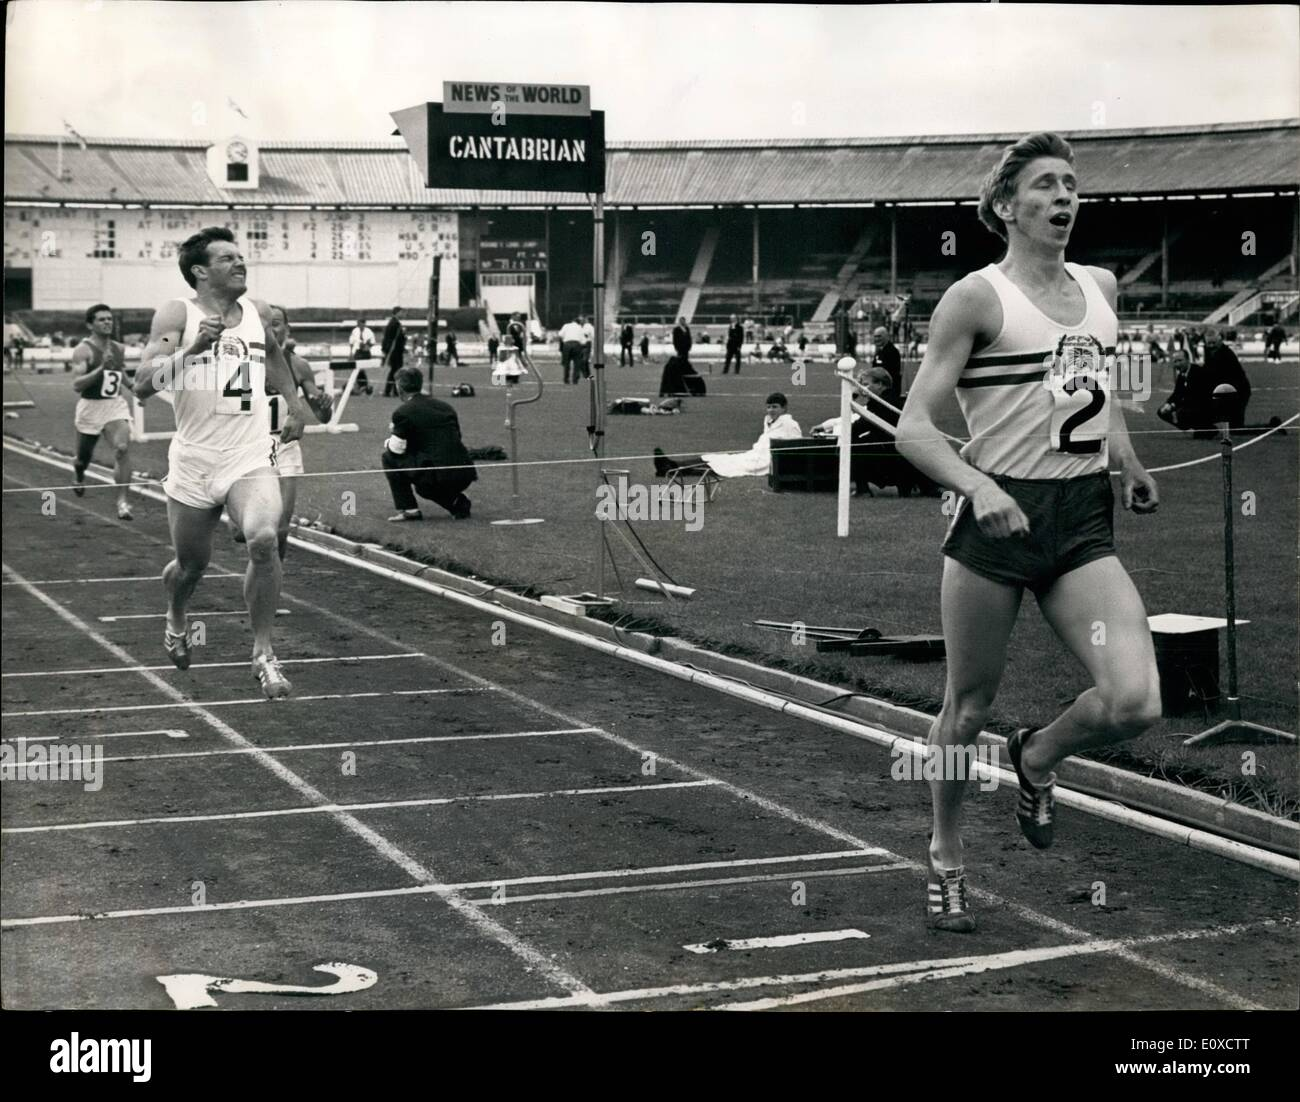 Jun. 06, 1966 - Boulter Wins 800-Meters For Britain: London: John P.Boulter (Achilles Club) of Britain is pictured winning the 800-Meters (Men) (87408 yards) event from Christopher S. Carter (Brighton and have Athletic club) Britain (No:4) second; Russia's Vadim Mikhay;lov (No:1) Third and Russia's Remir Mitrofanov (No:3), during the second and Final day of the Britain and Northern Ireland Versus Russia International Athletics Match organised by the British Amateur Athletic Board at the White City Stadium Today, June 18 - Stock Image